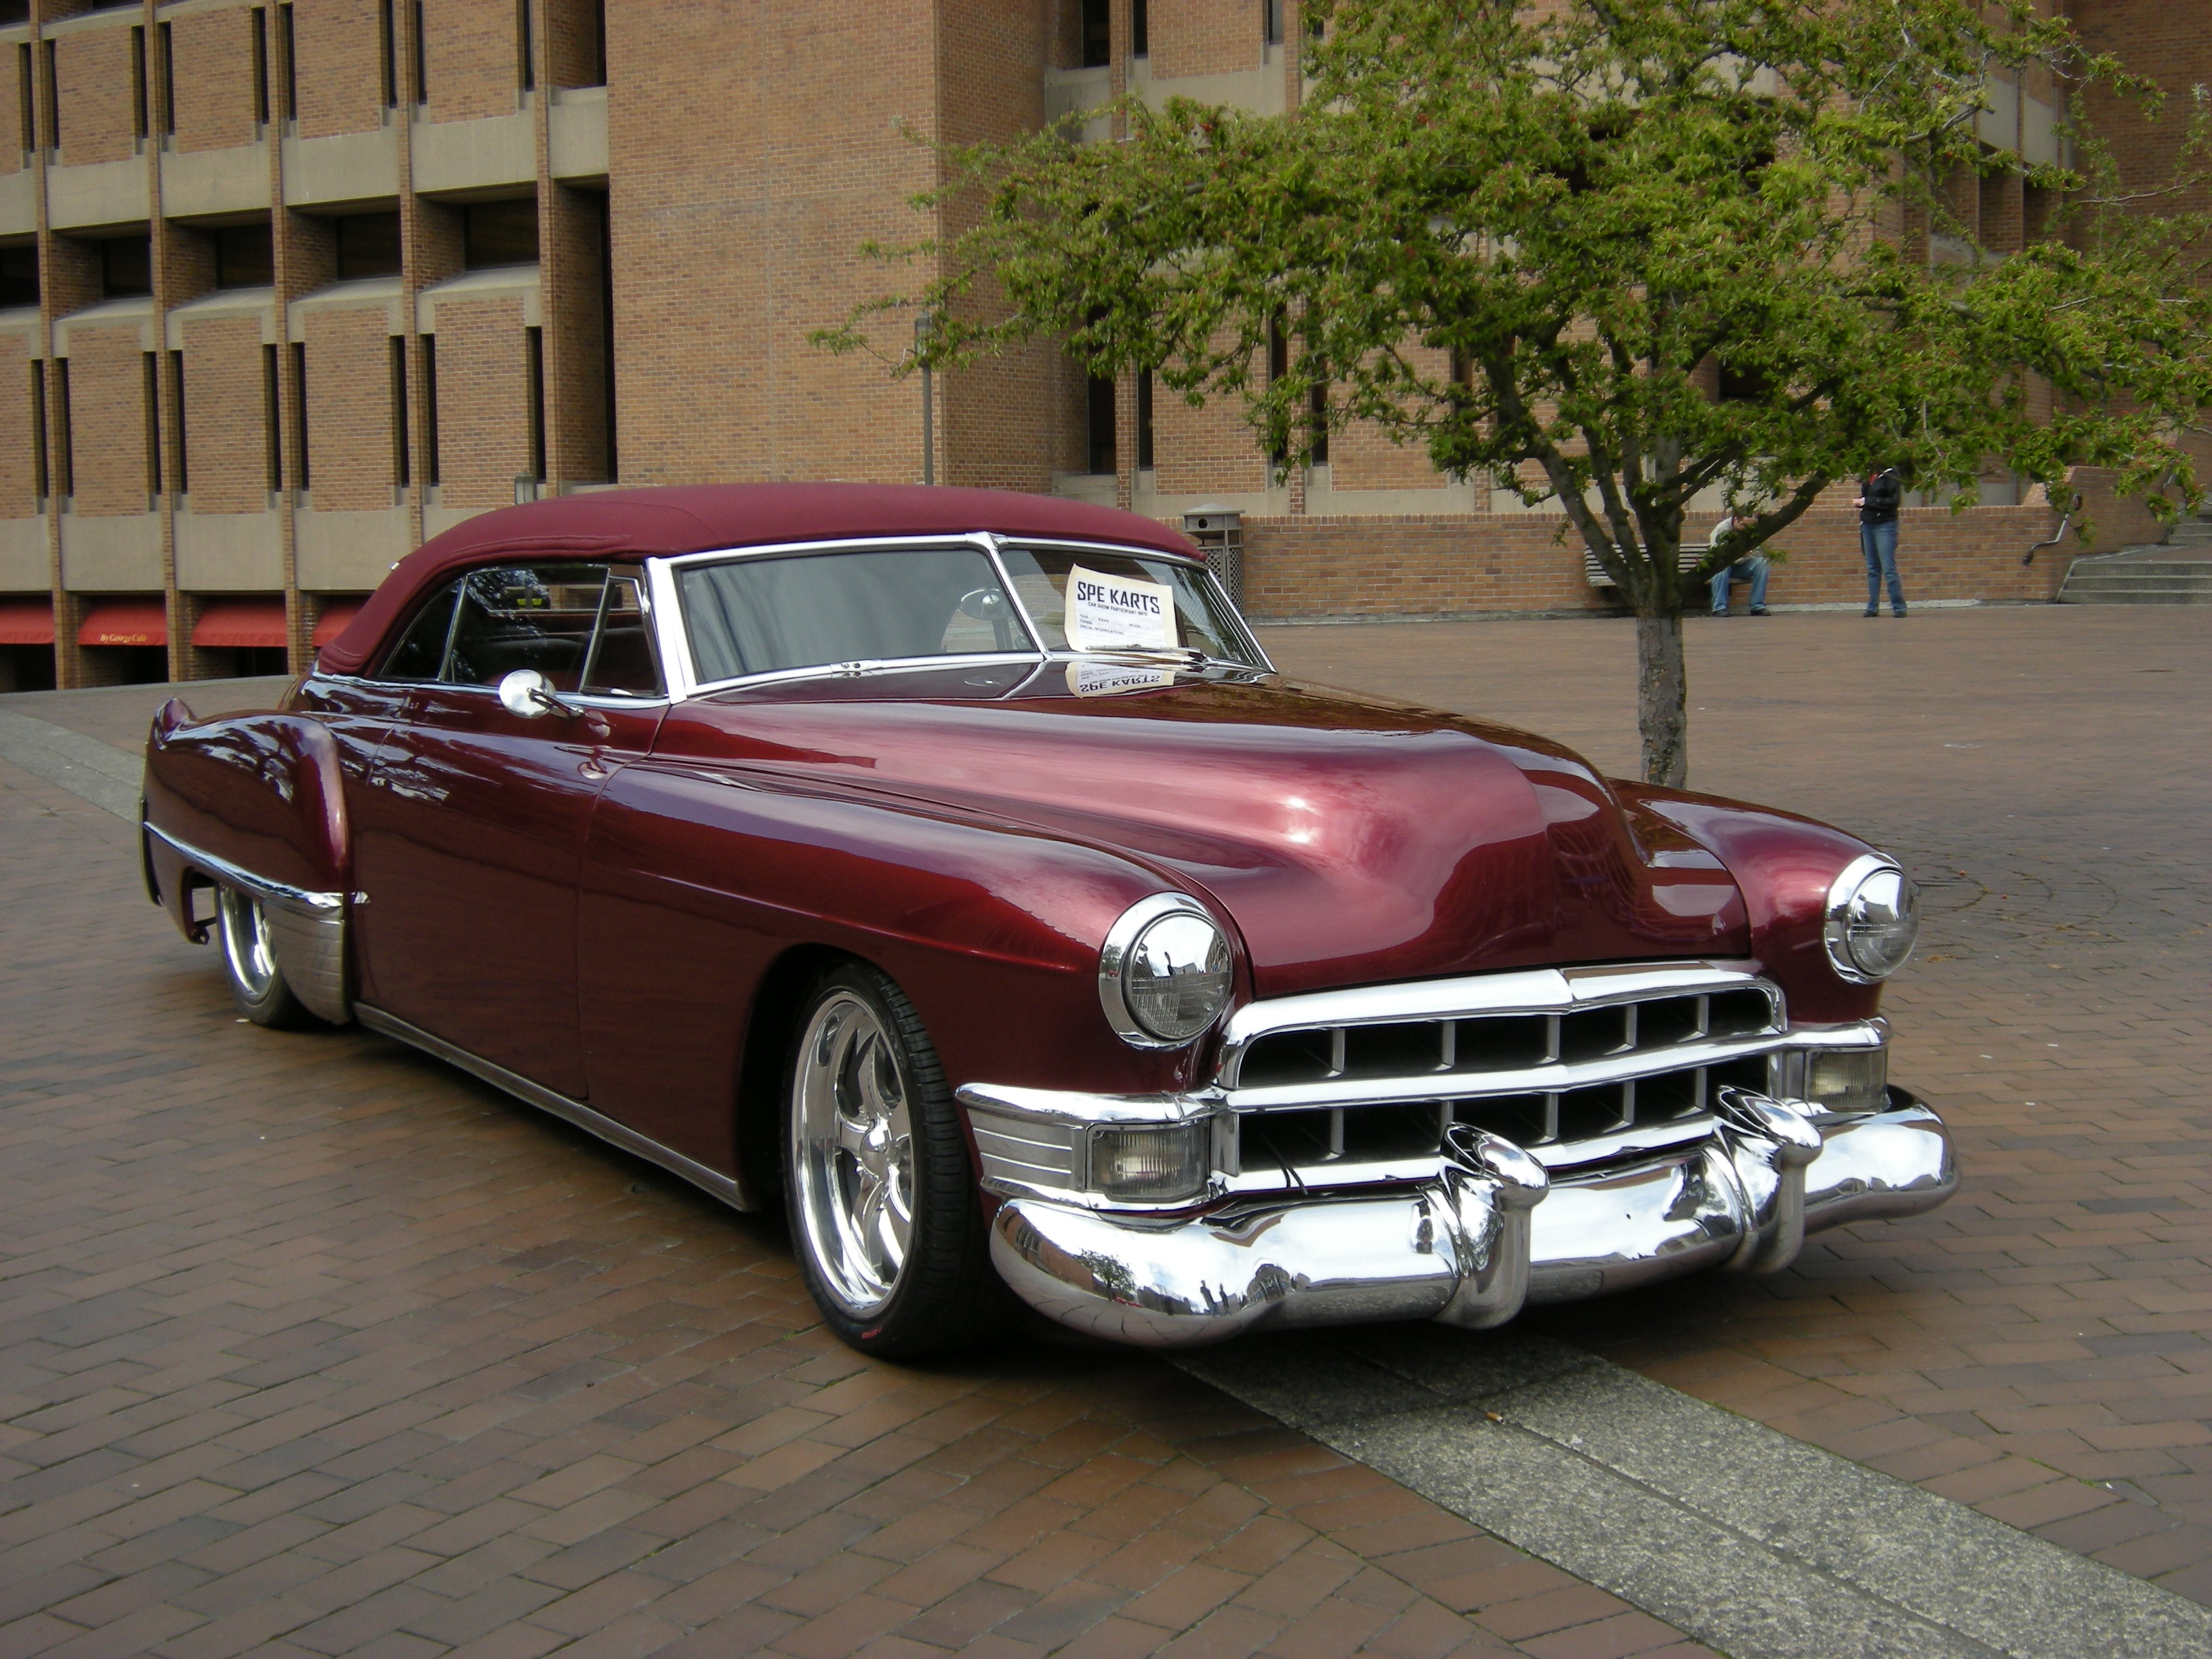 File:1949 Cadillac Coupe de Ville 01.jpg - Wikimedia Commons